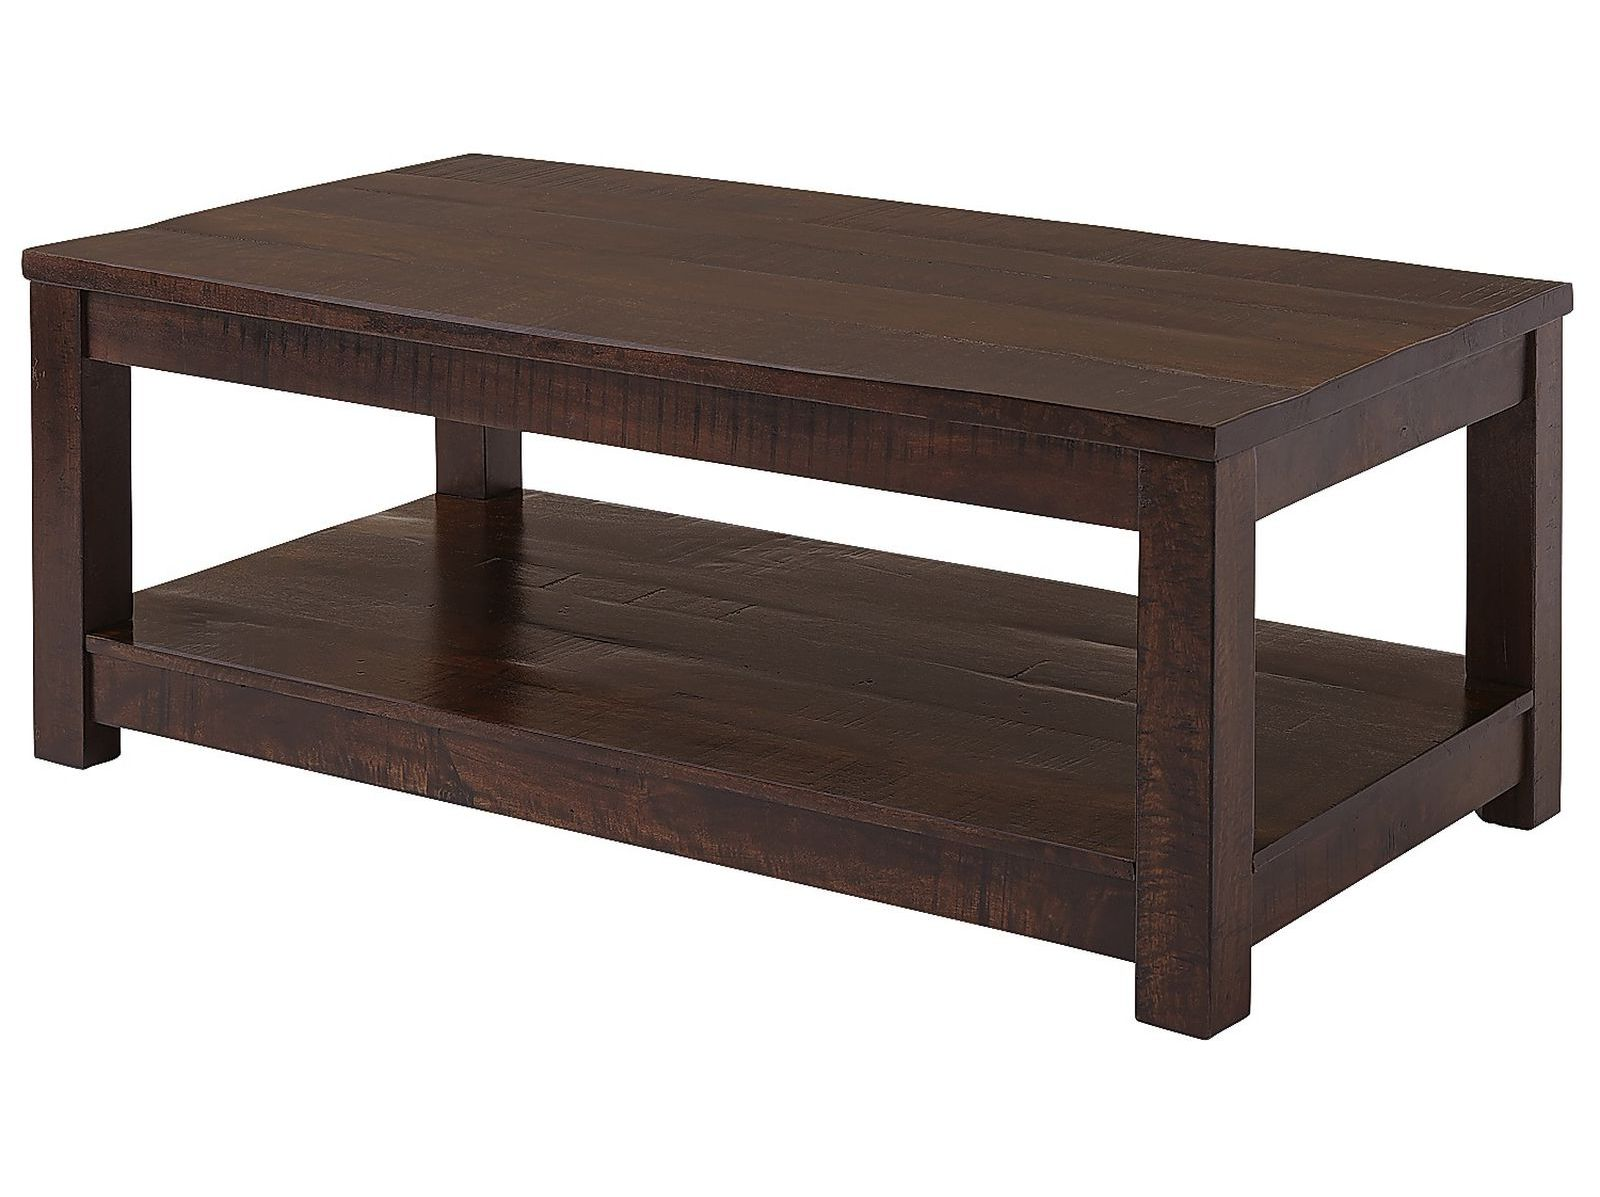 Coffee Table Dimensions Average Coffee Table Size Roy Home Design